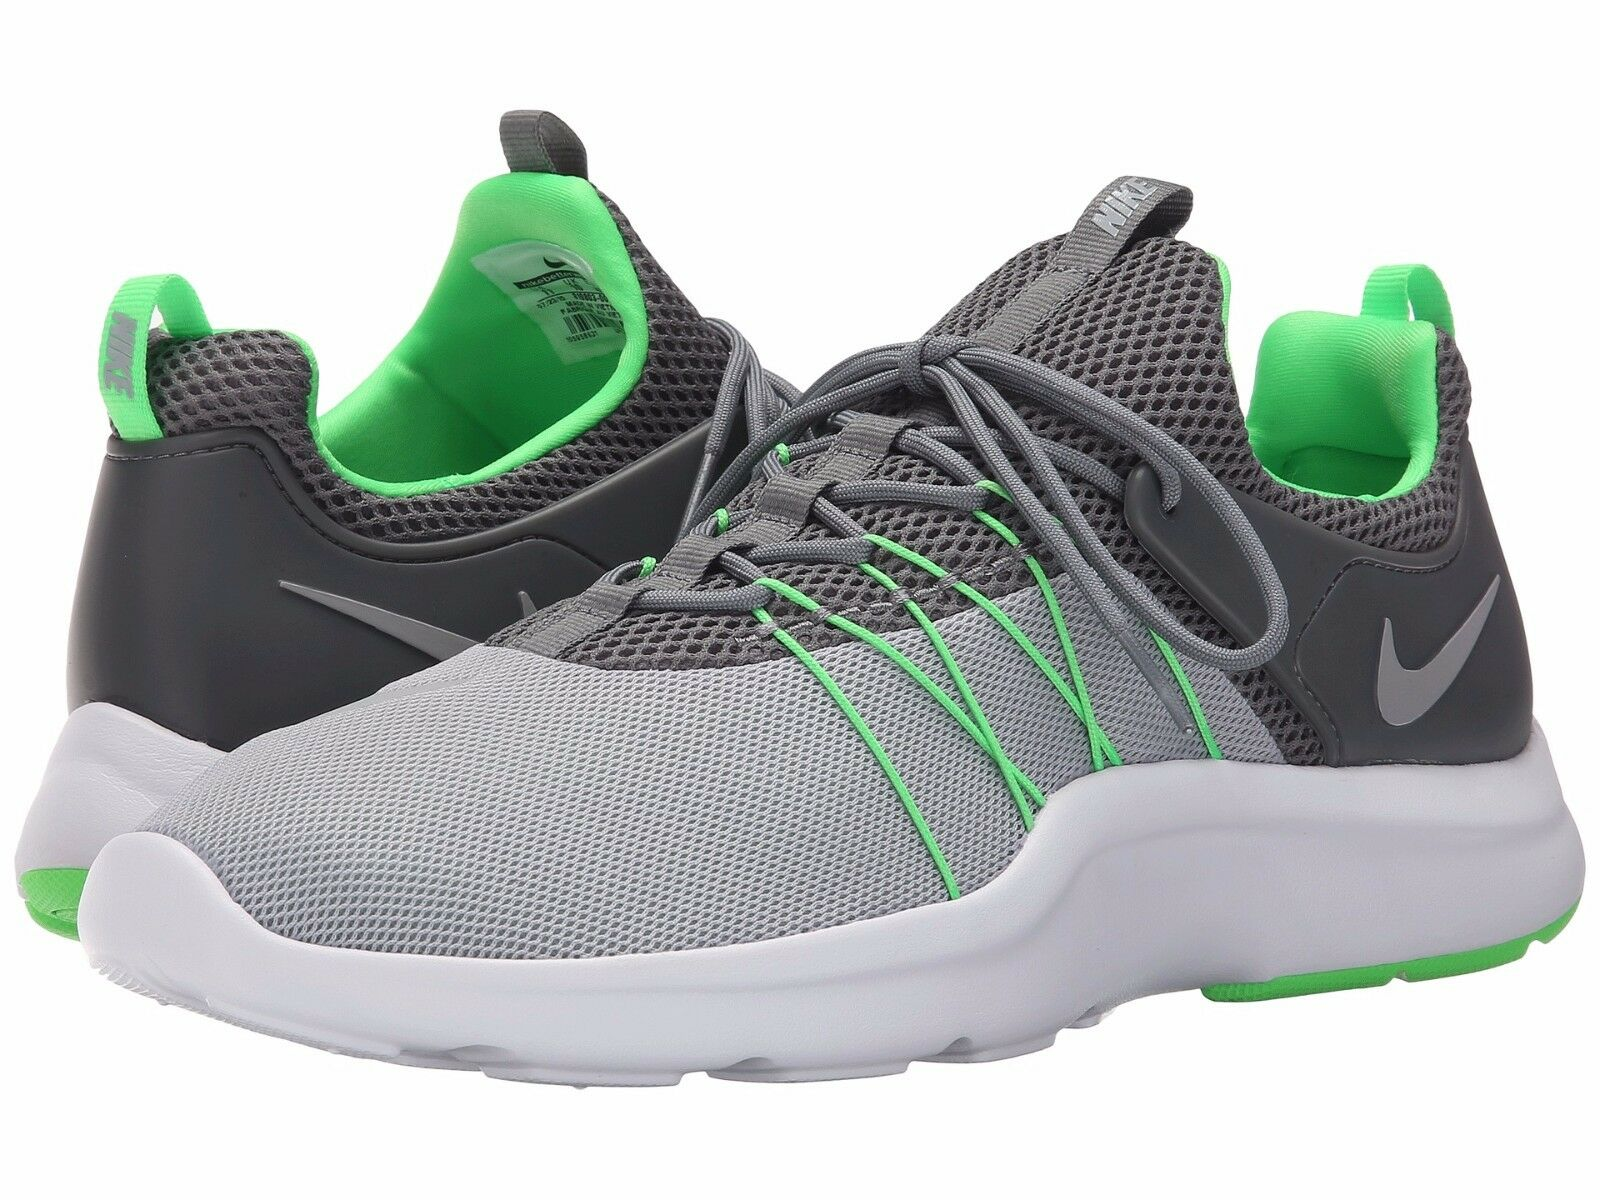 819803-003 Nike Darwin Running Chaussures Cool Gris /Green-Wolf Gris